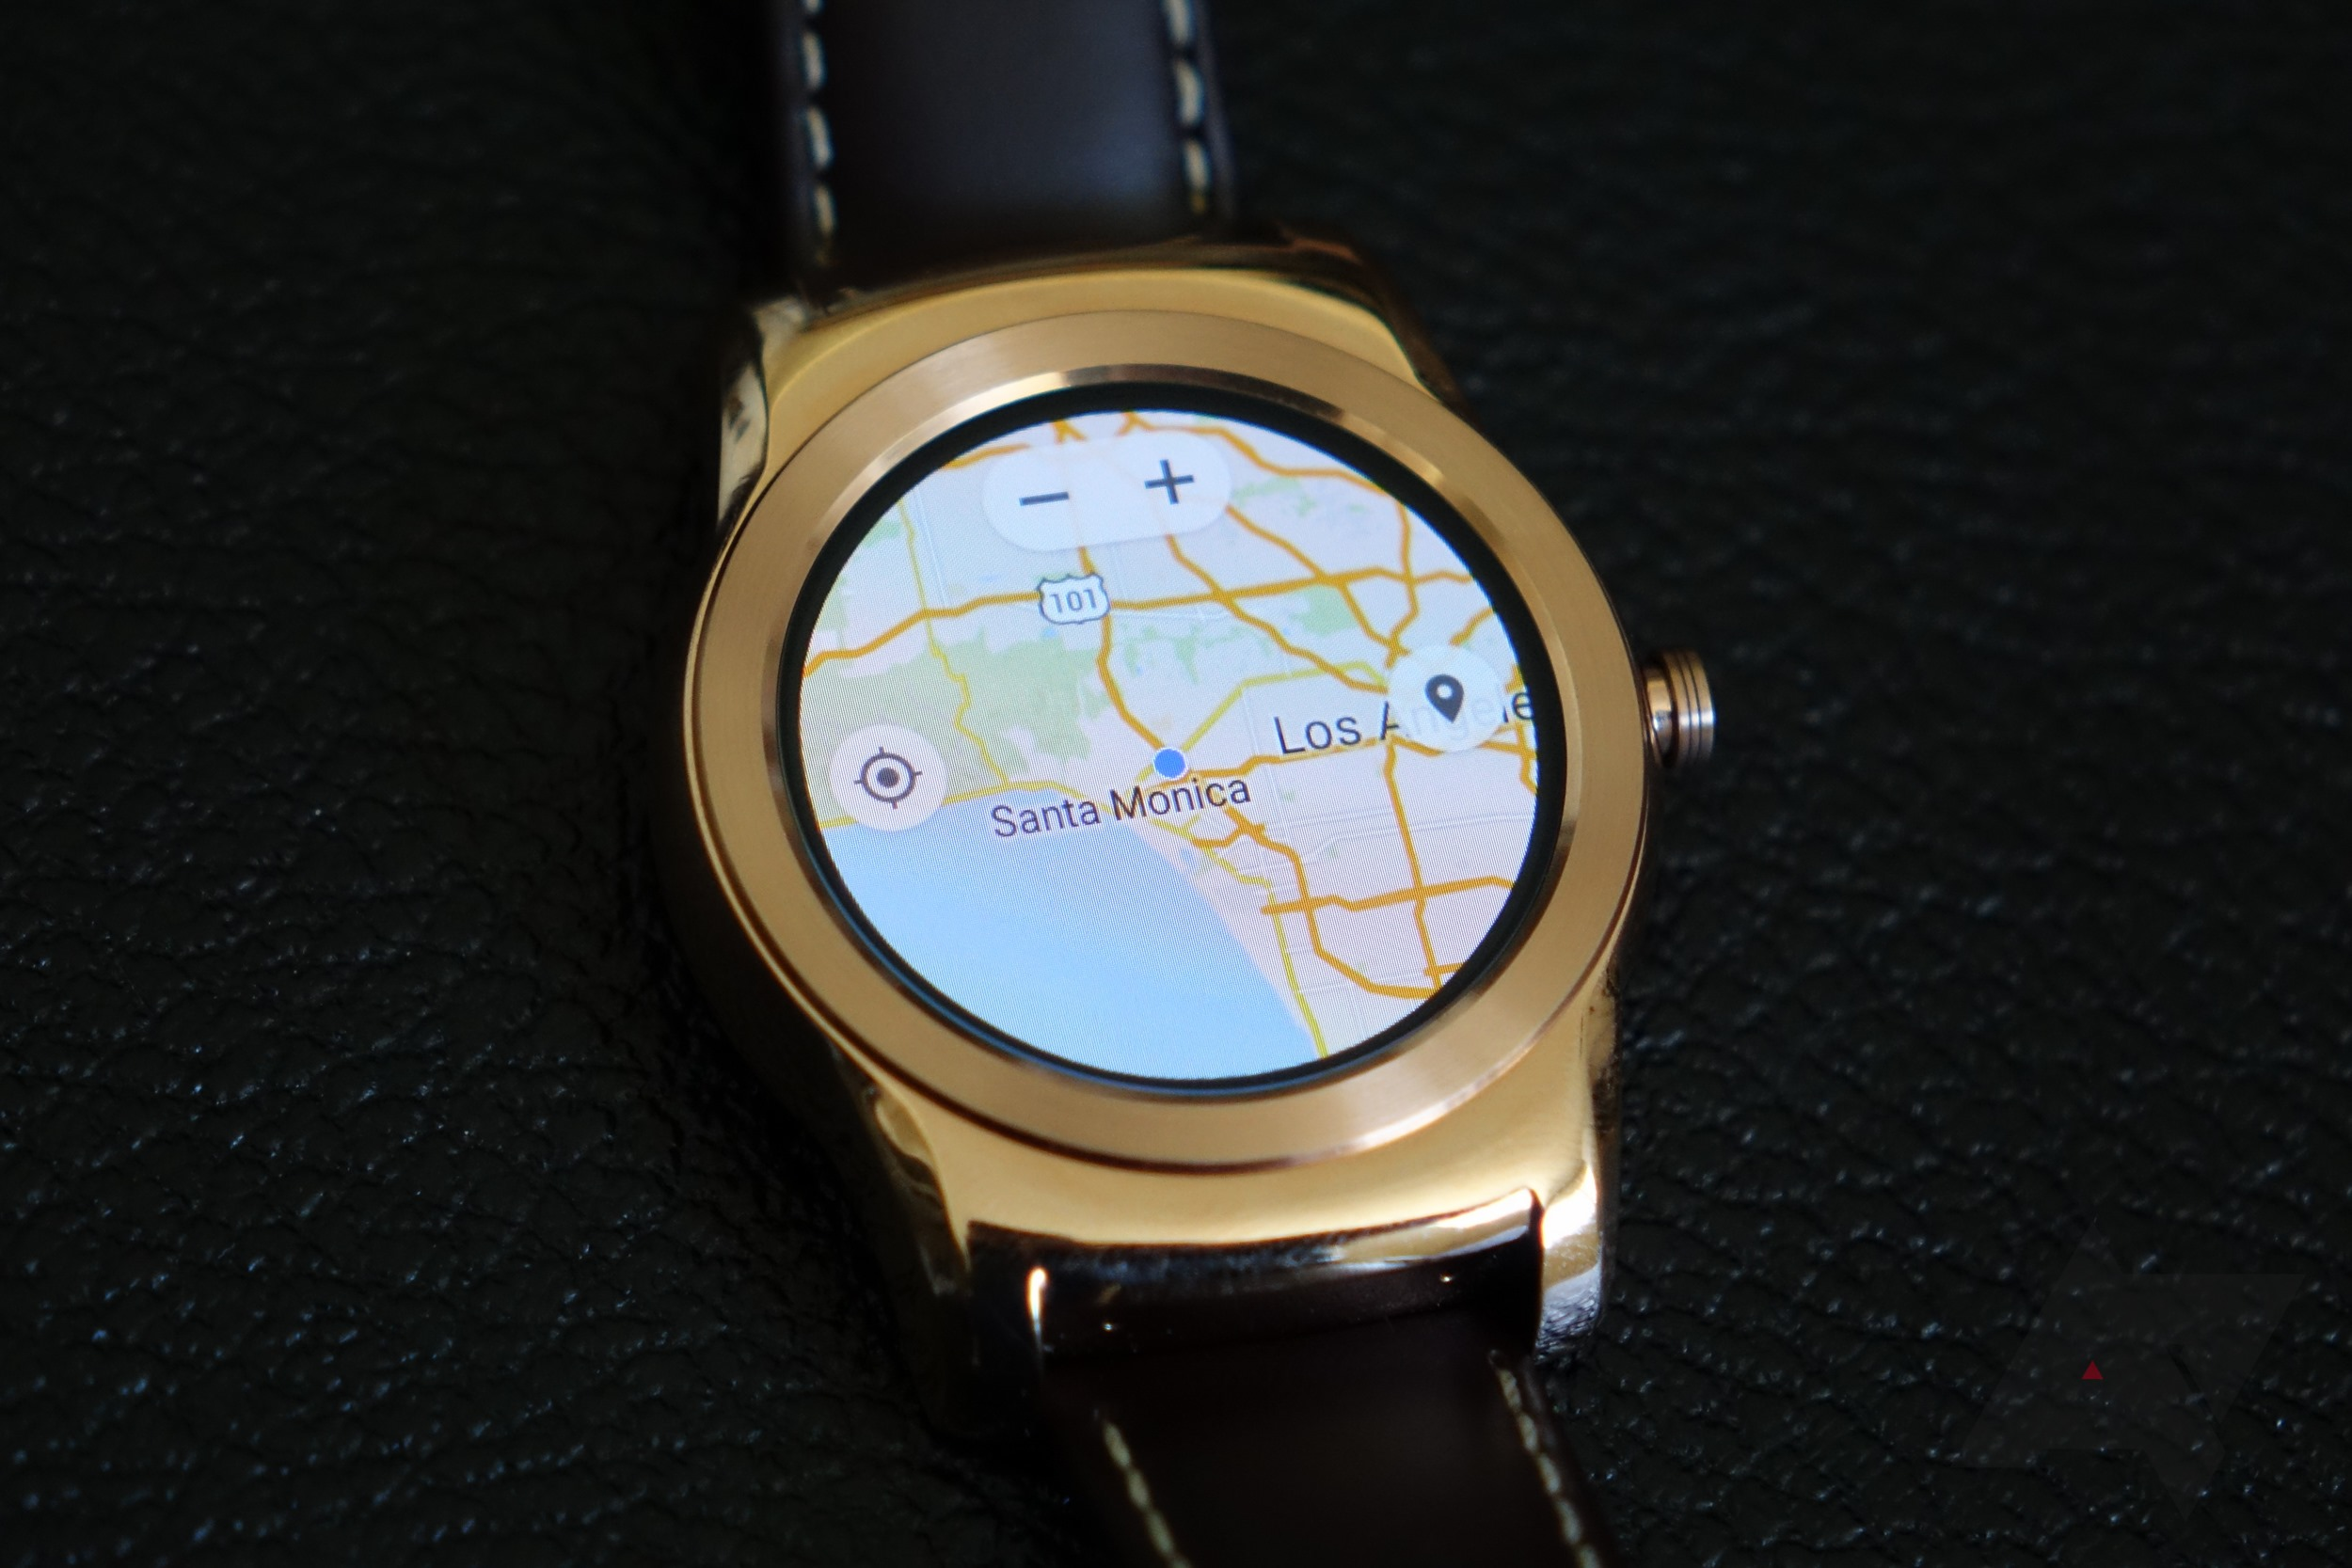 This Is Google Maps For Android Wear Running On A Watch Urbane - Plot my walk google maps